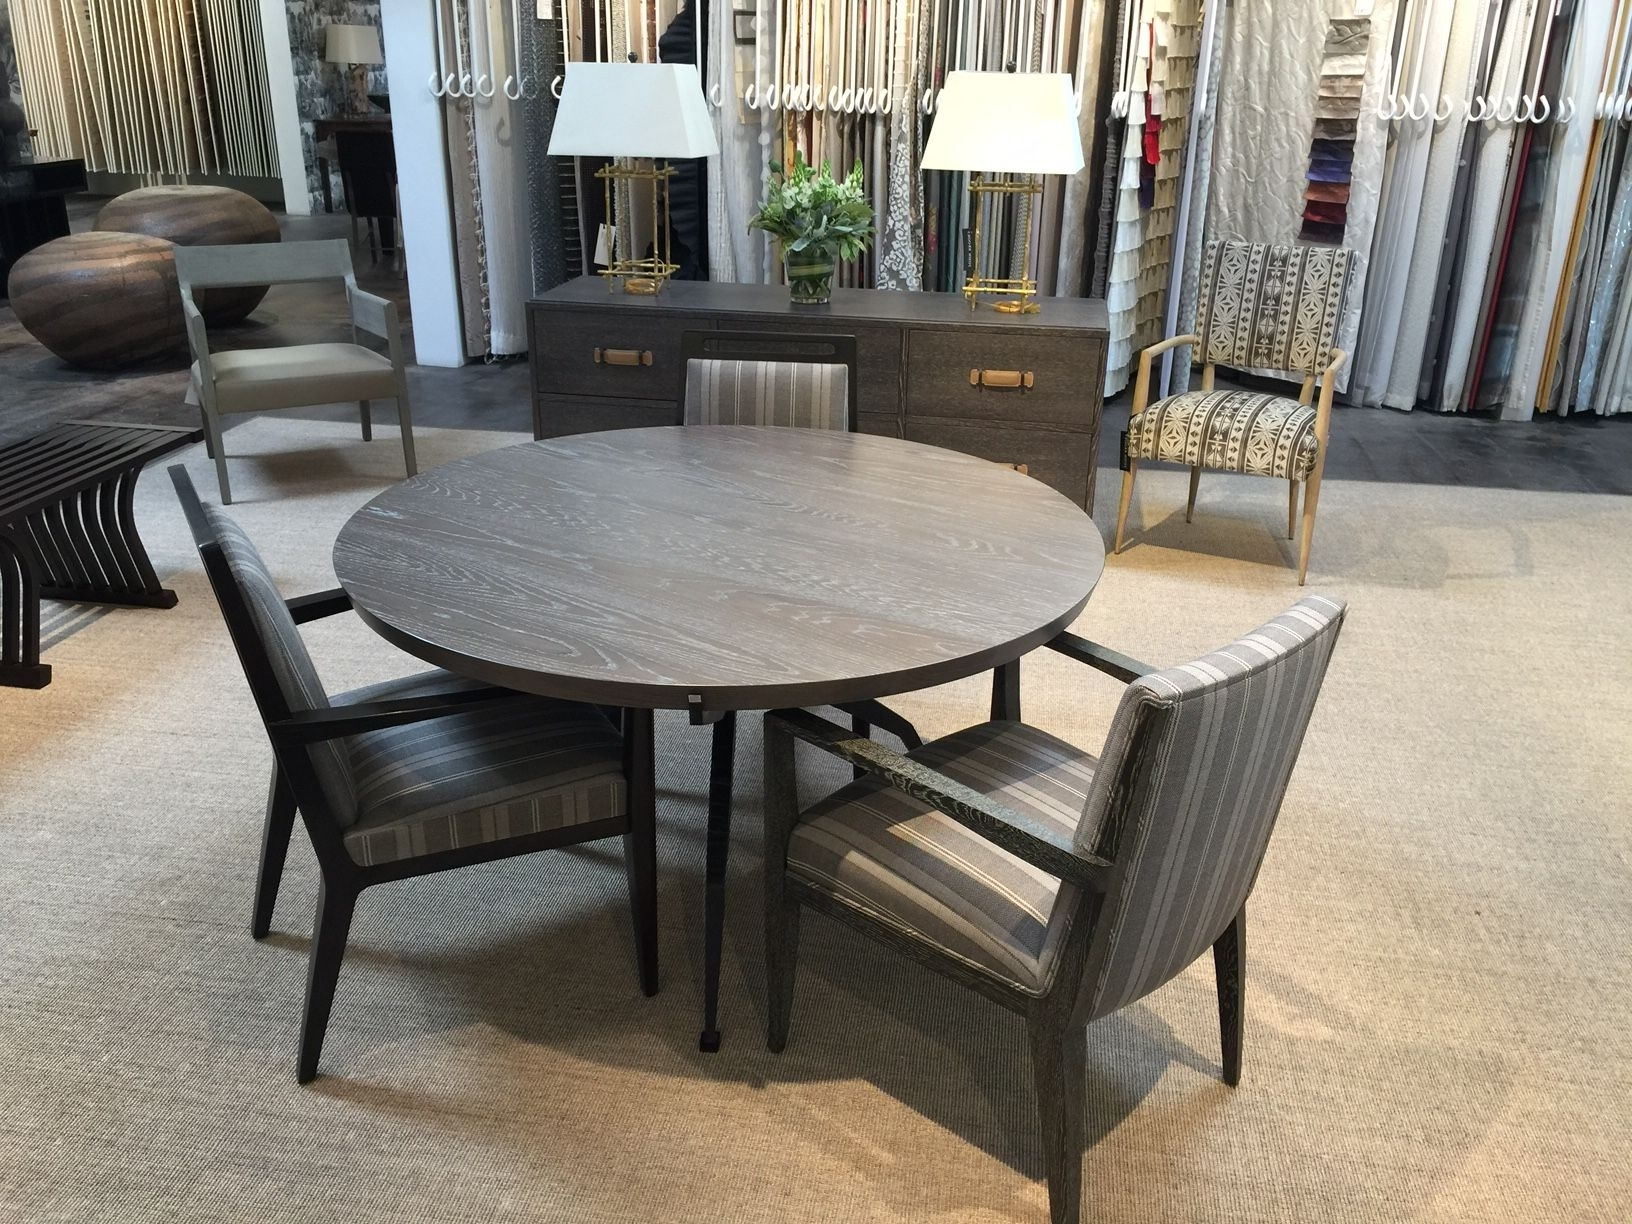 Popular John Brooks – Scottsdale Showroom: Mattaliano Gallery Showcasing Pertaining To Market 6 Piece Dining Sets With Side Chairs (Gallery 9 of 25)